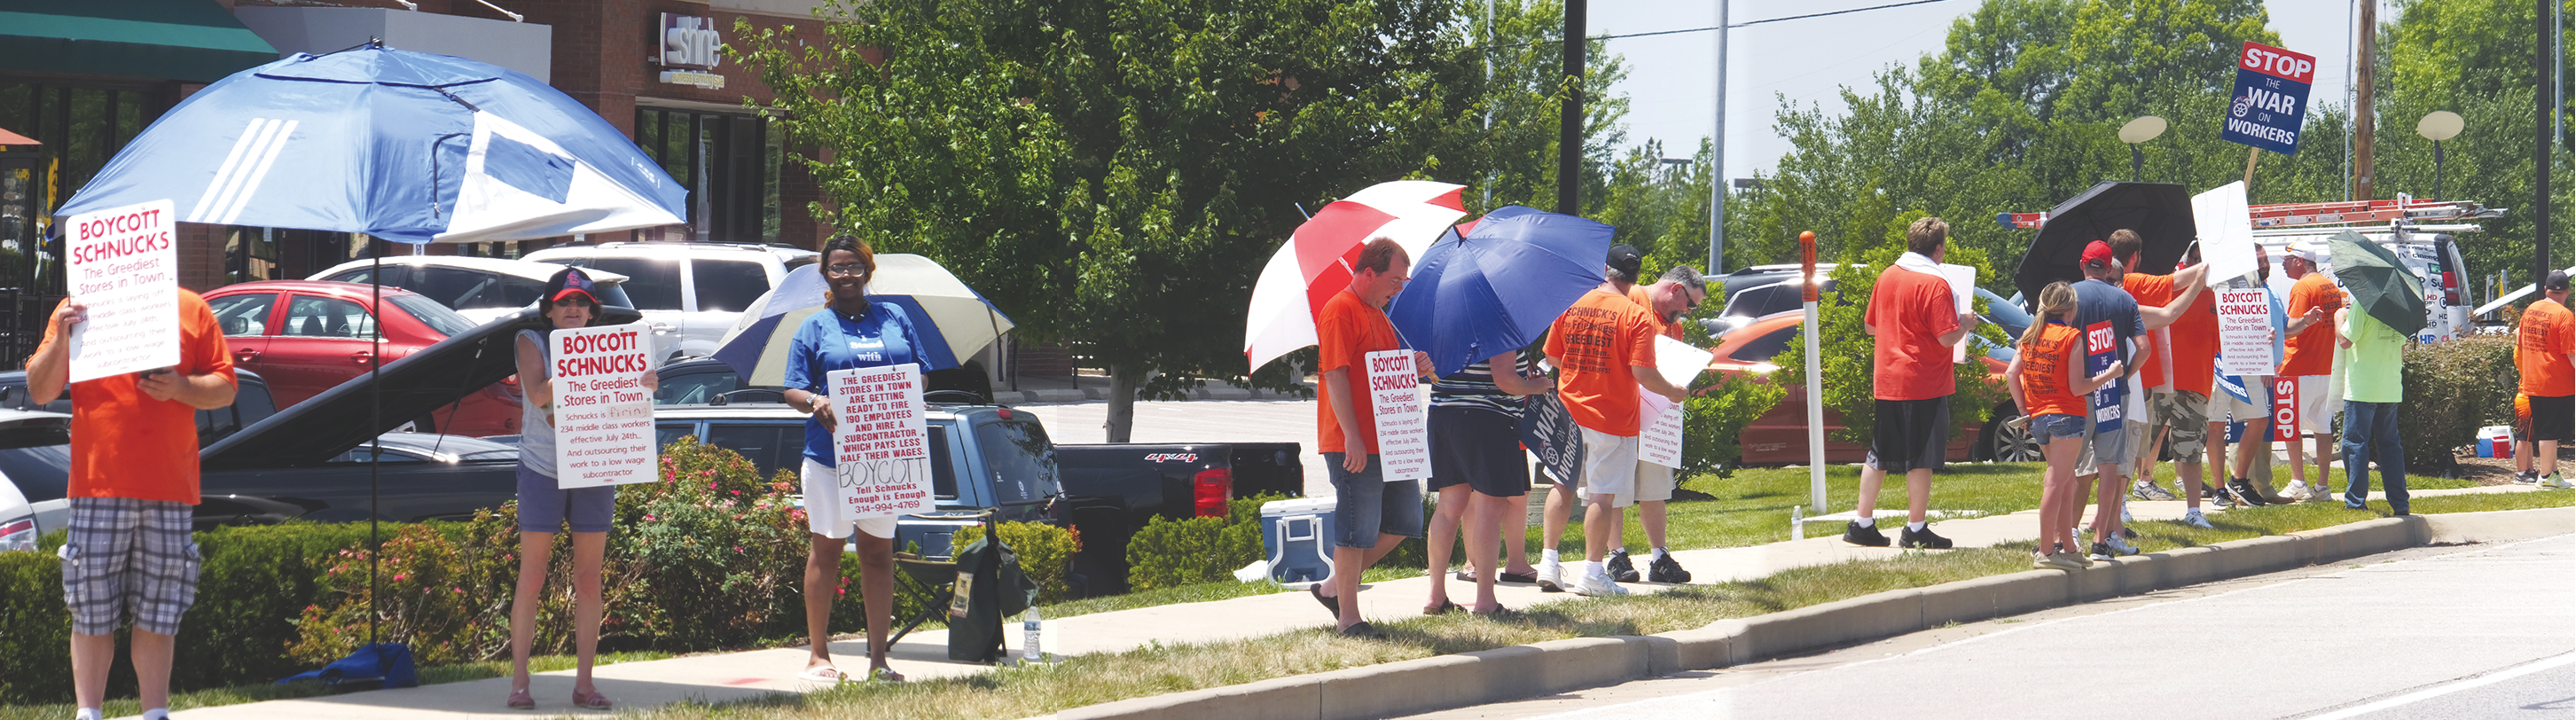 EFFECTIVE MASS PICKETING at the Schnucks Des Peres Center at Manchester and Ballas saw members of Teamsters Local 688 and other unions and retirees covering every entrance to the shopping center with great results. - Labor Tribune photo